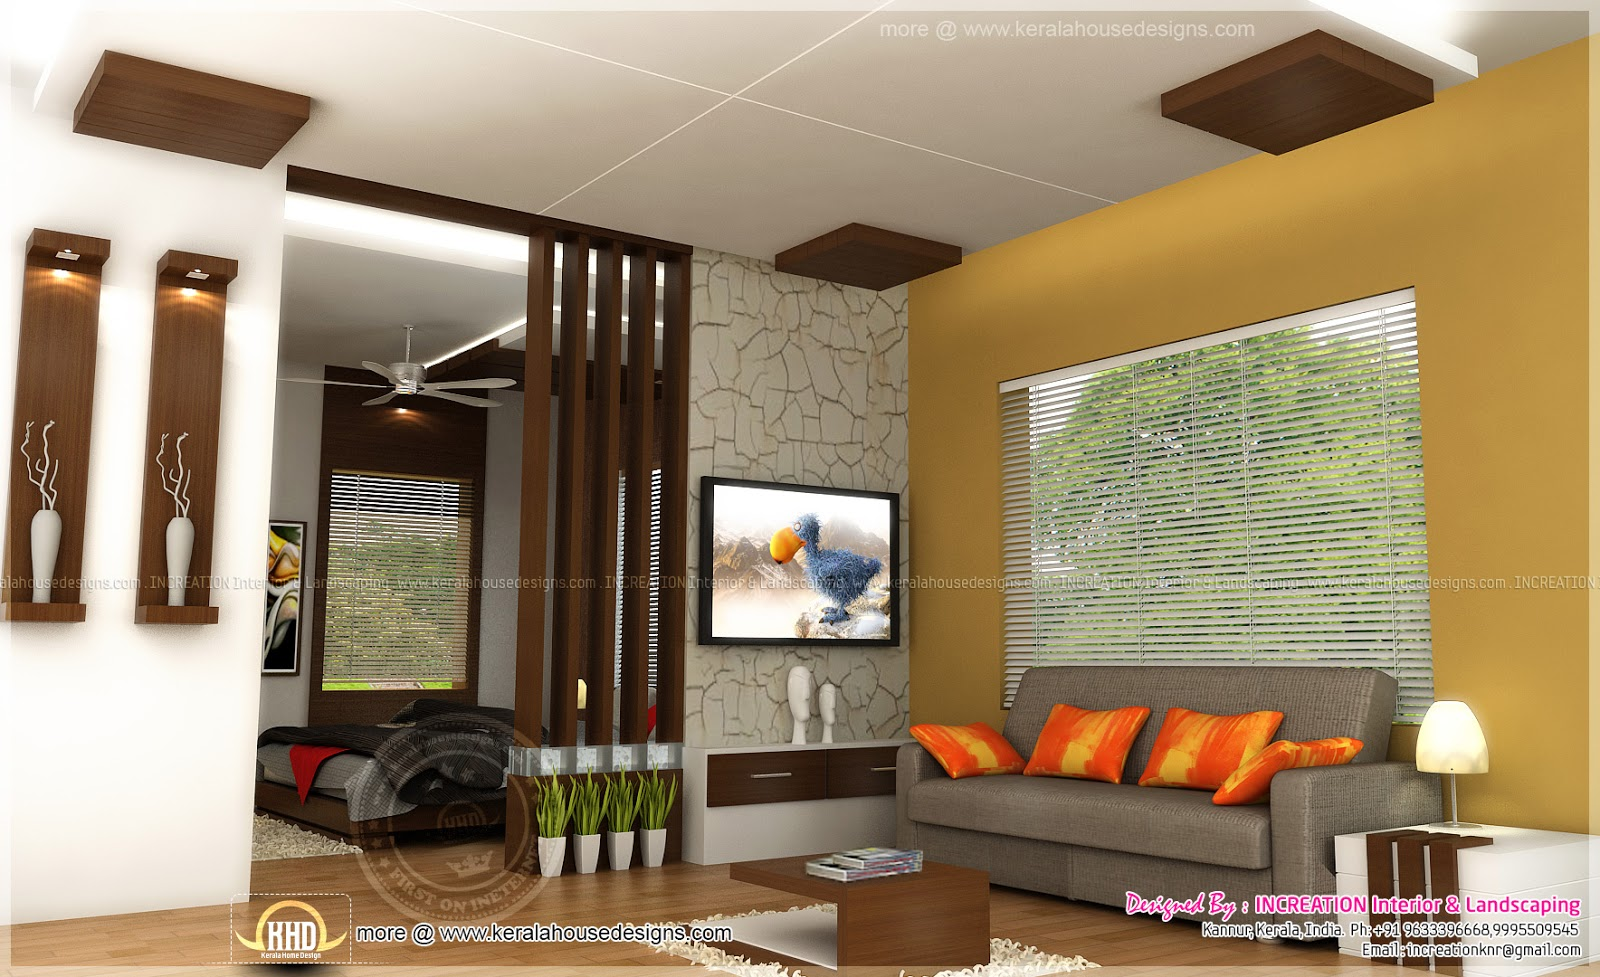 Interior designs from kannur kerala kerala home design for Kerala home interior designs photos